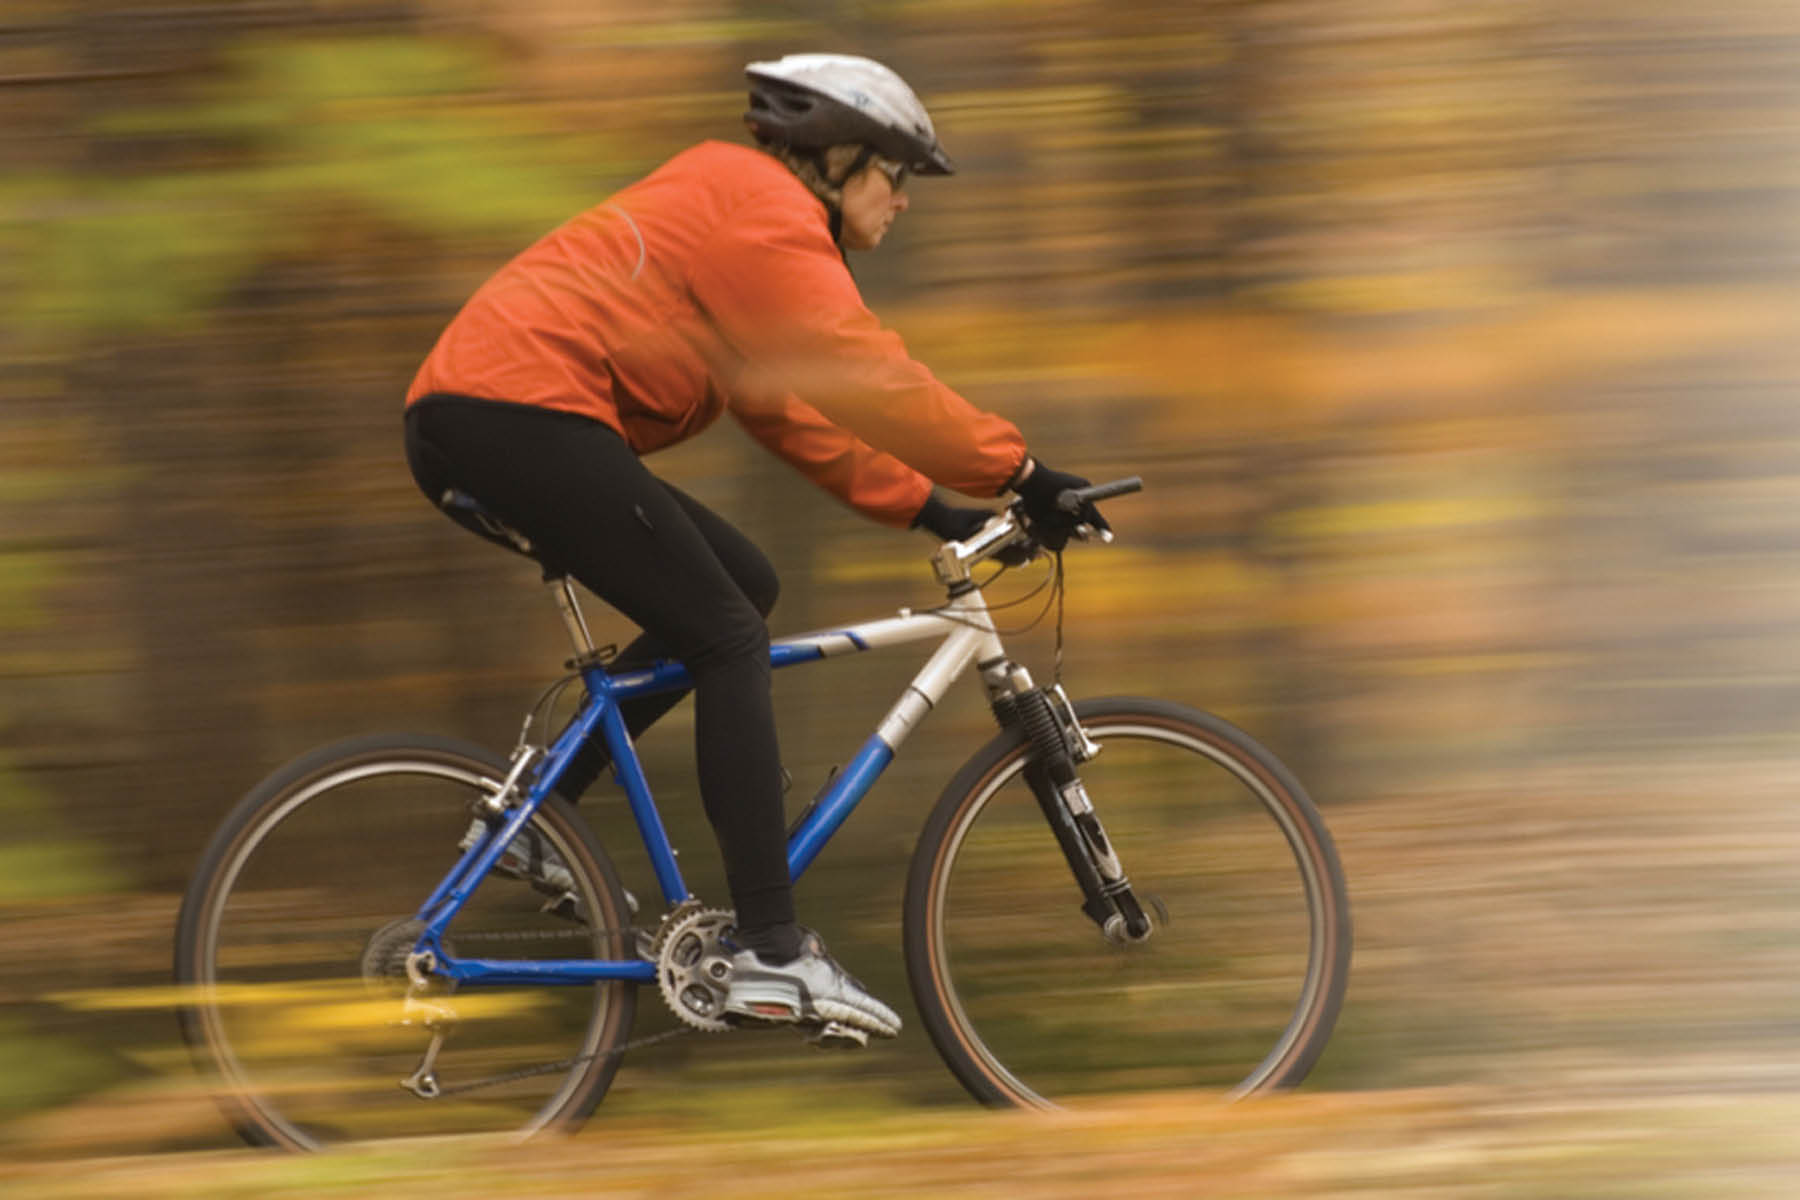 biking cycling gear and accessories in takoma park, maryland